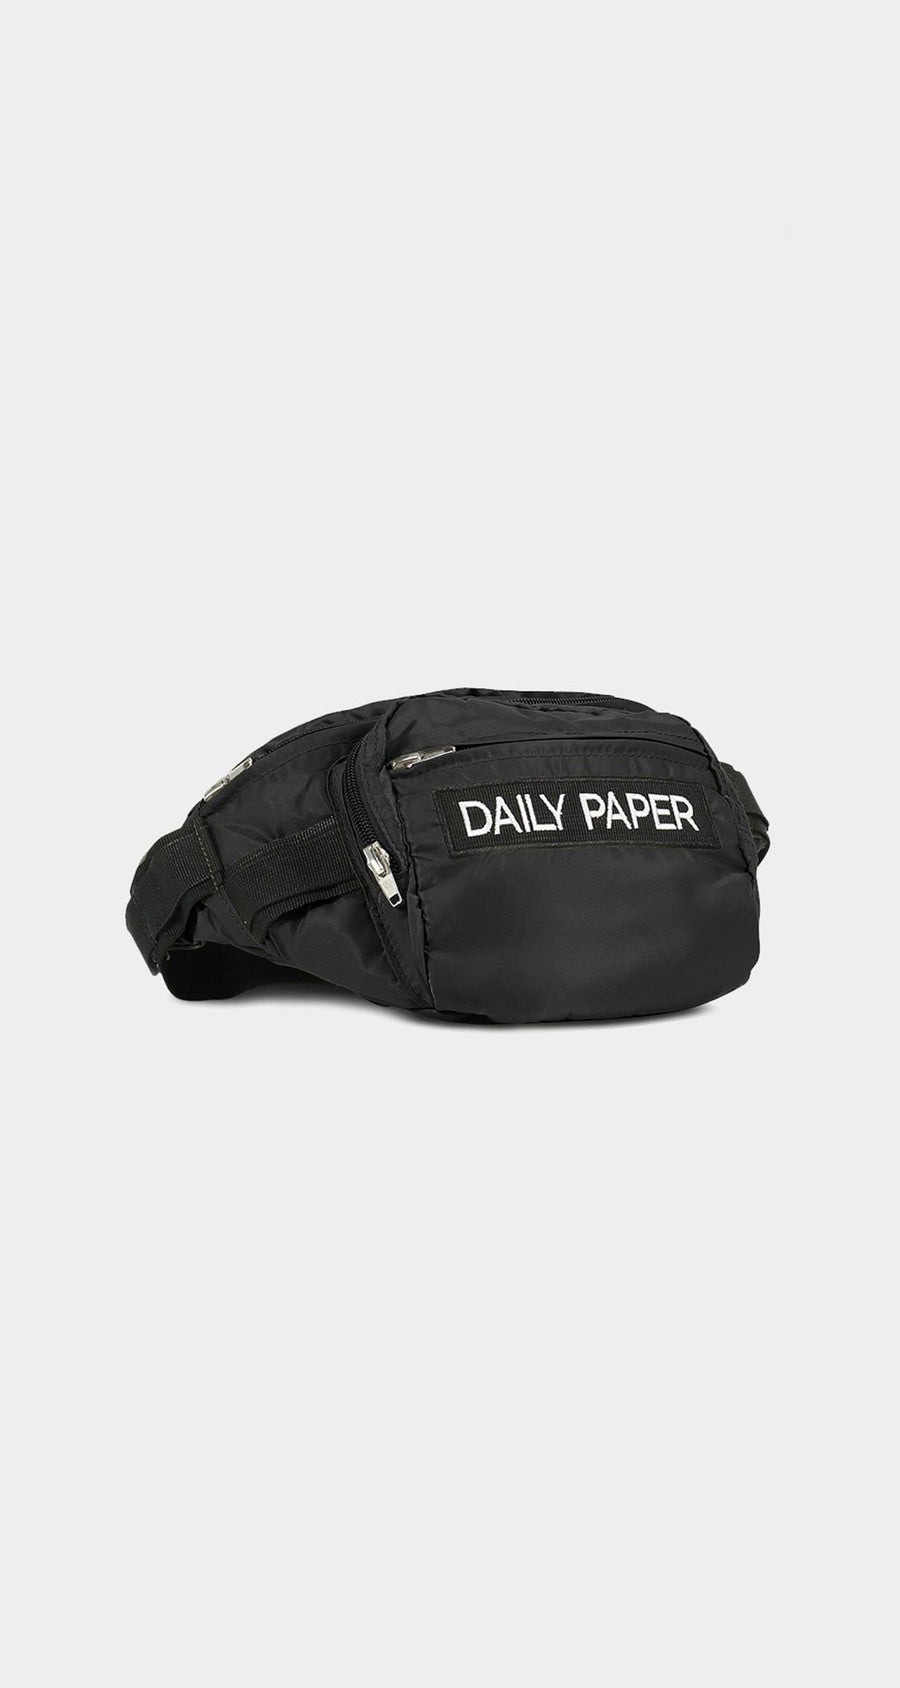 Daily Paper - Waist Pack Black Front